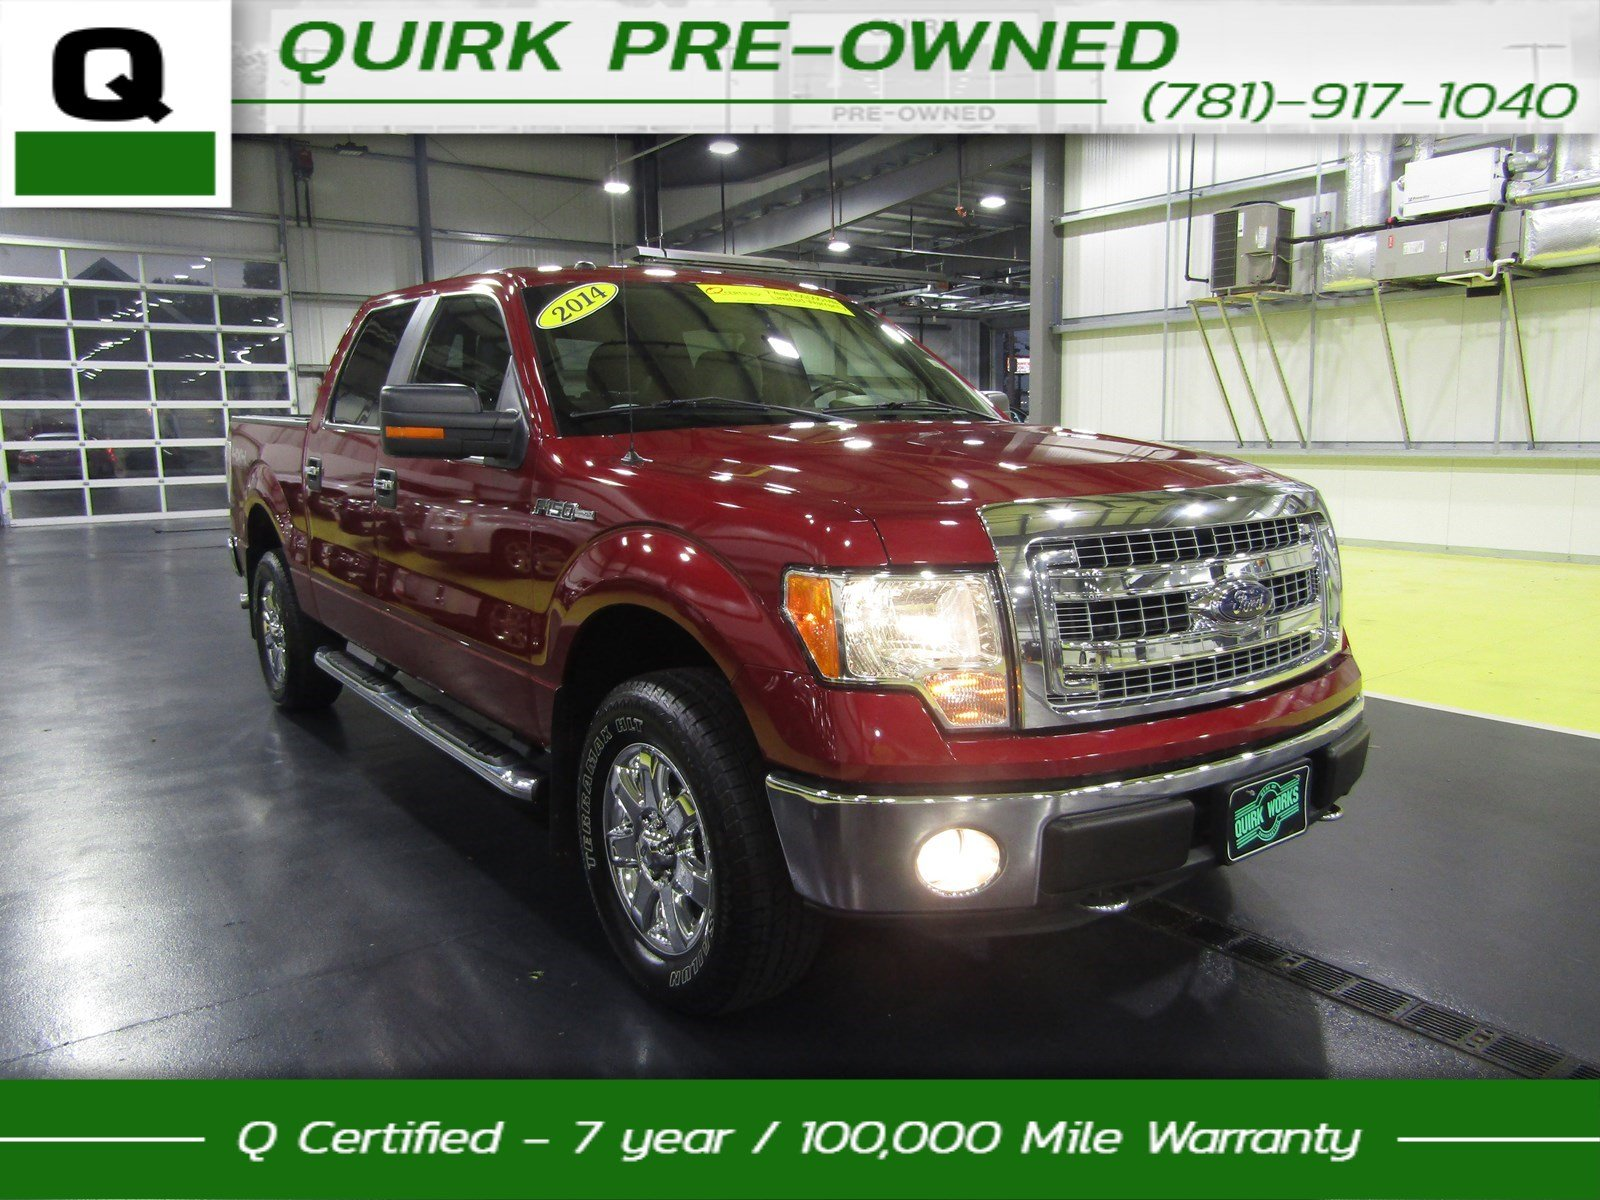 certified pre owned 2014 ford f 150 xlt crew cab pickup in braintree p19933 quirk pre owned ma. Black Bedroom Furniture Sets. Home Design Ideas